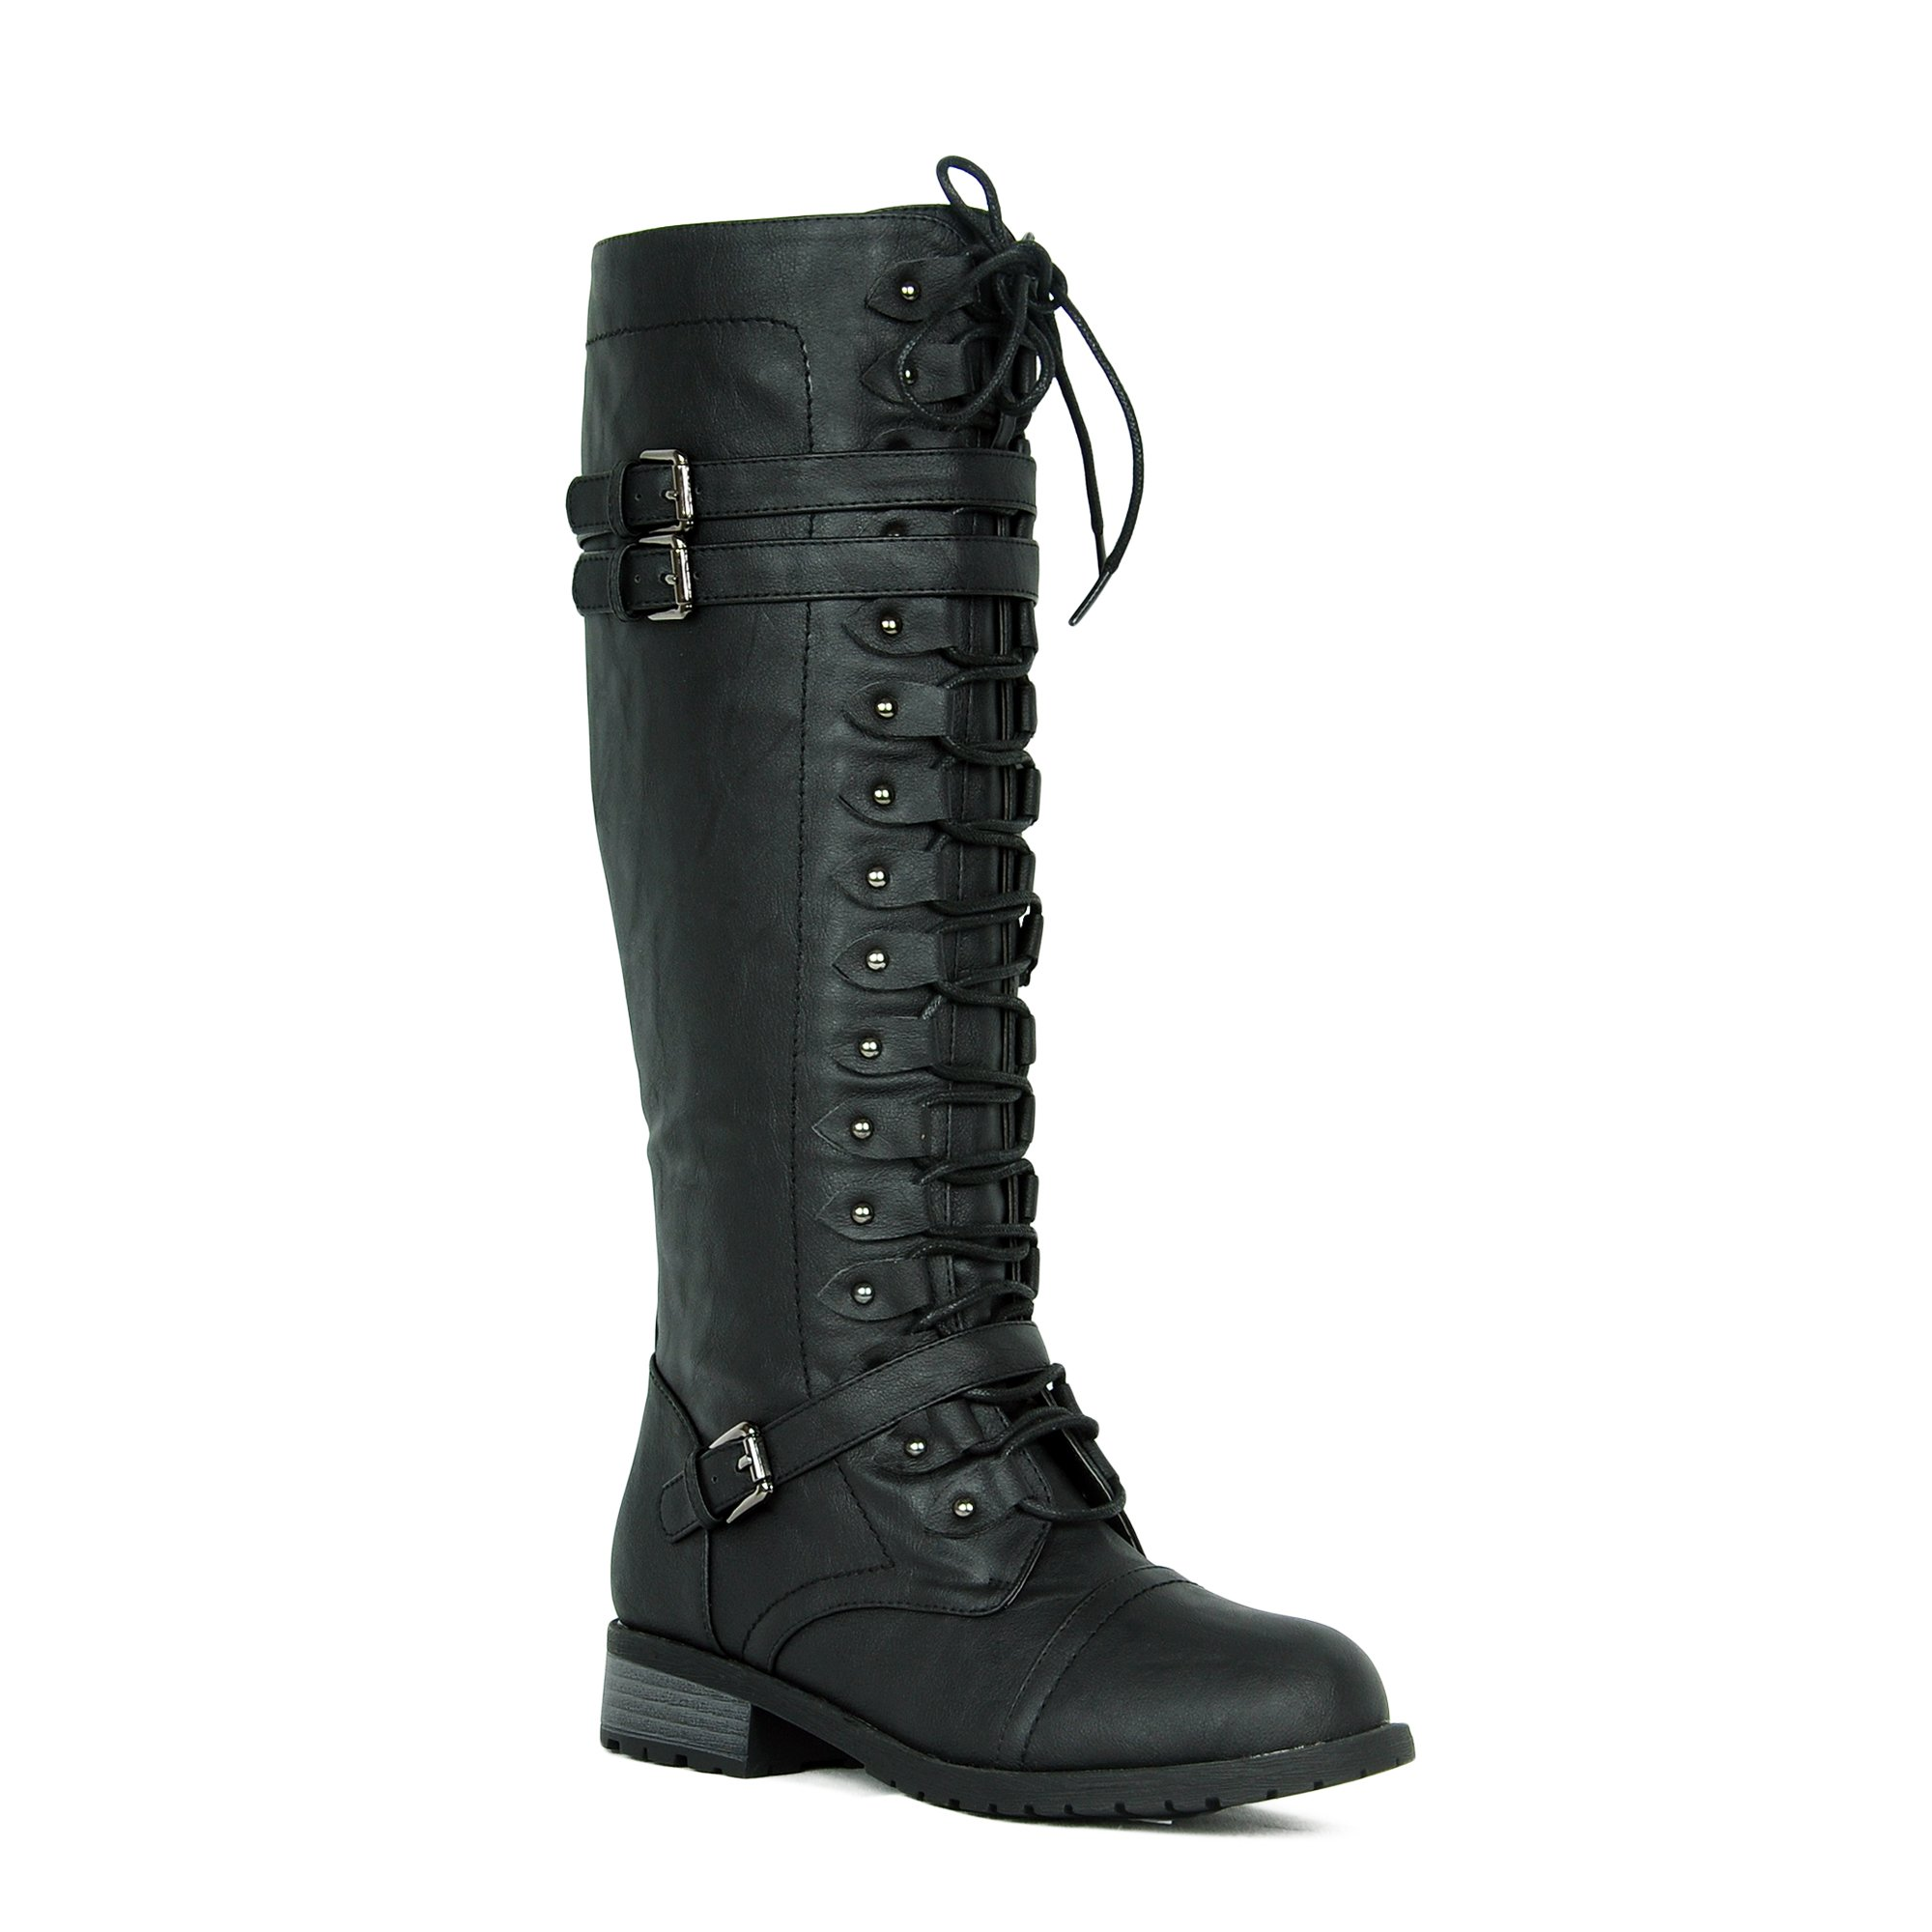 Women's Knee High Riding Boots Lace Up Buckles Winter Combat Boots Black 9